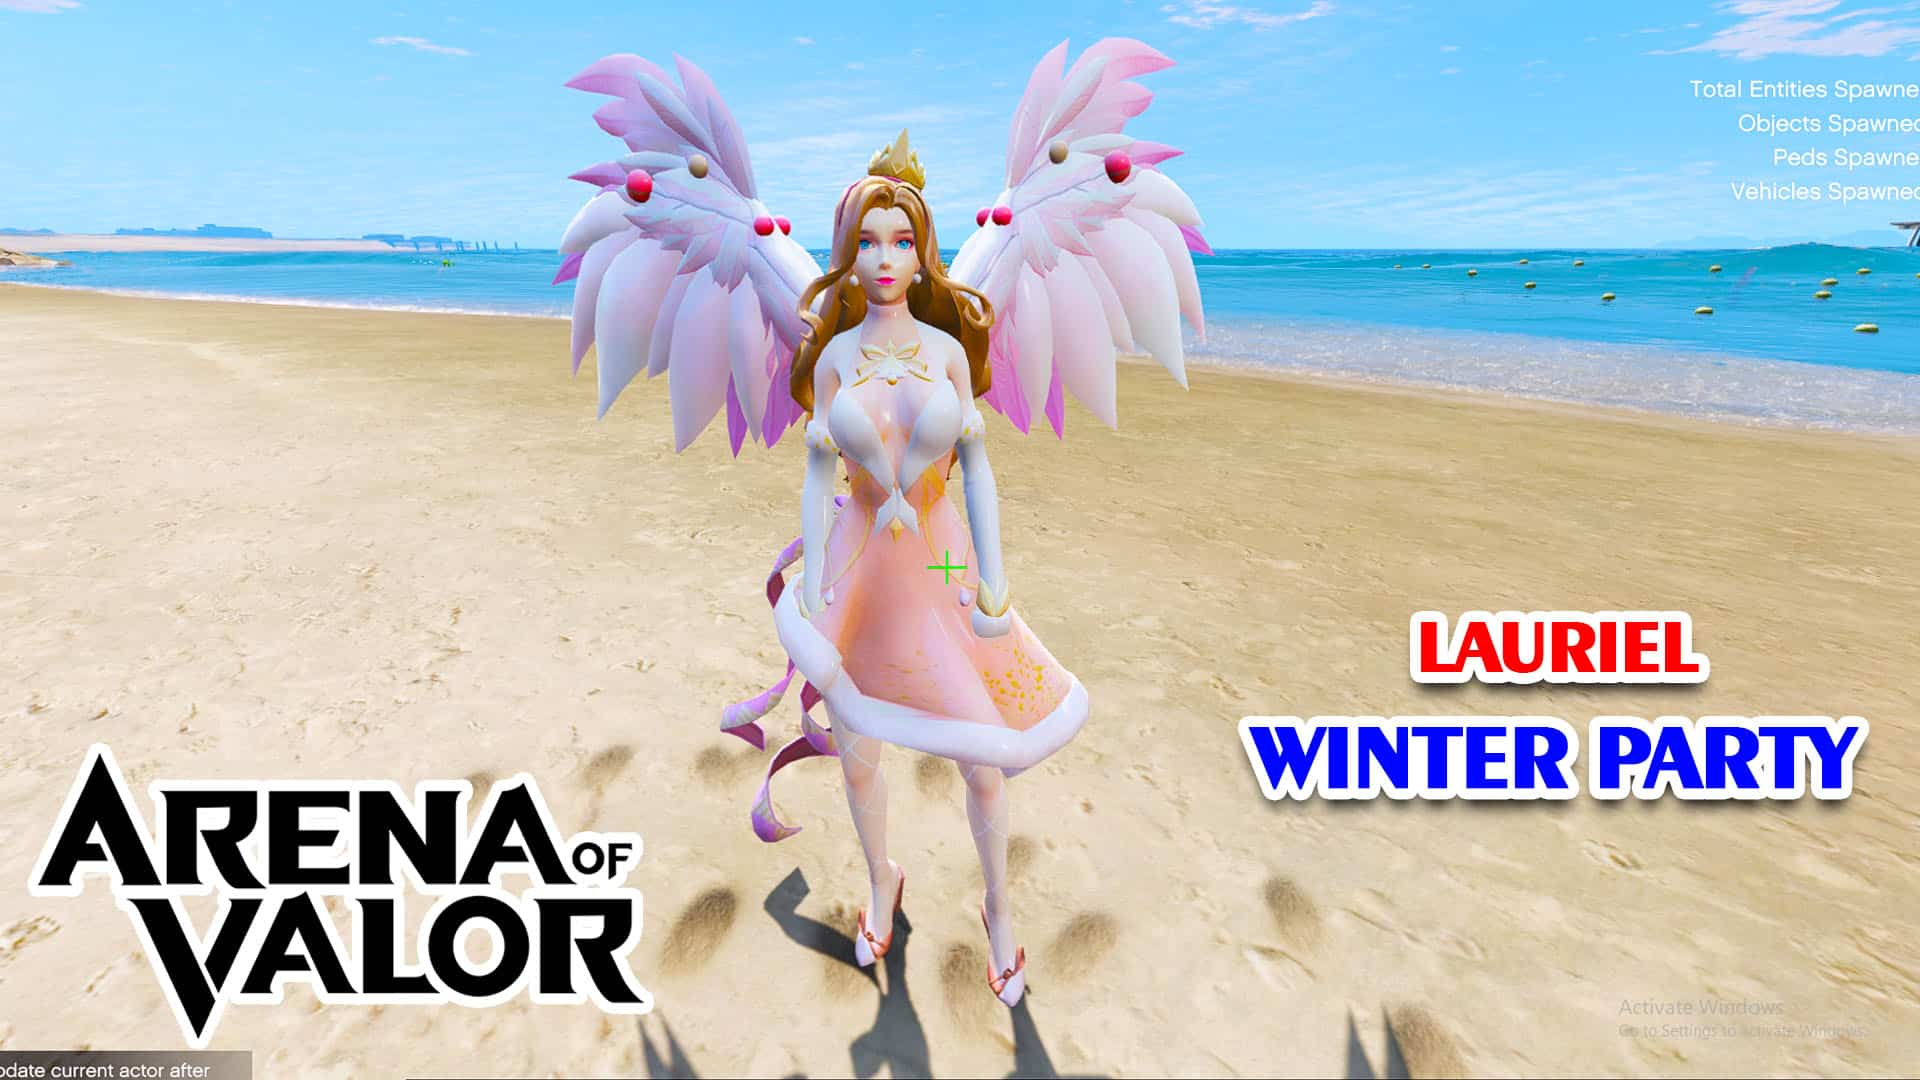 GTA 5 Mod Lauriel Winter Party Arena of Valor